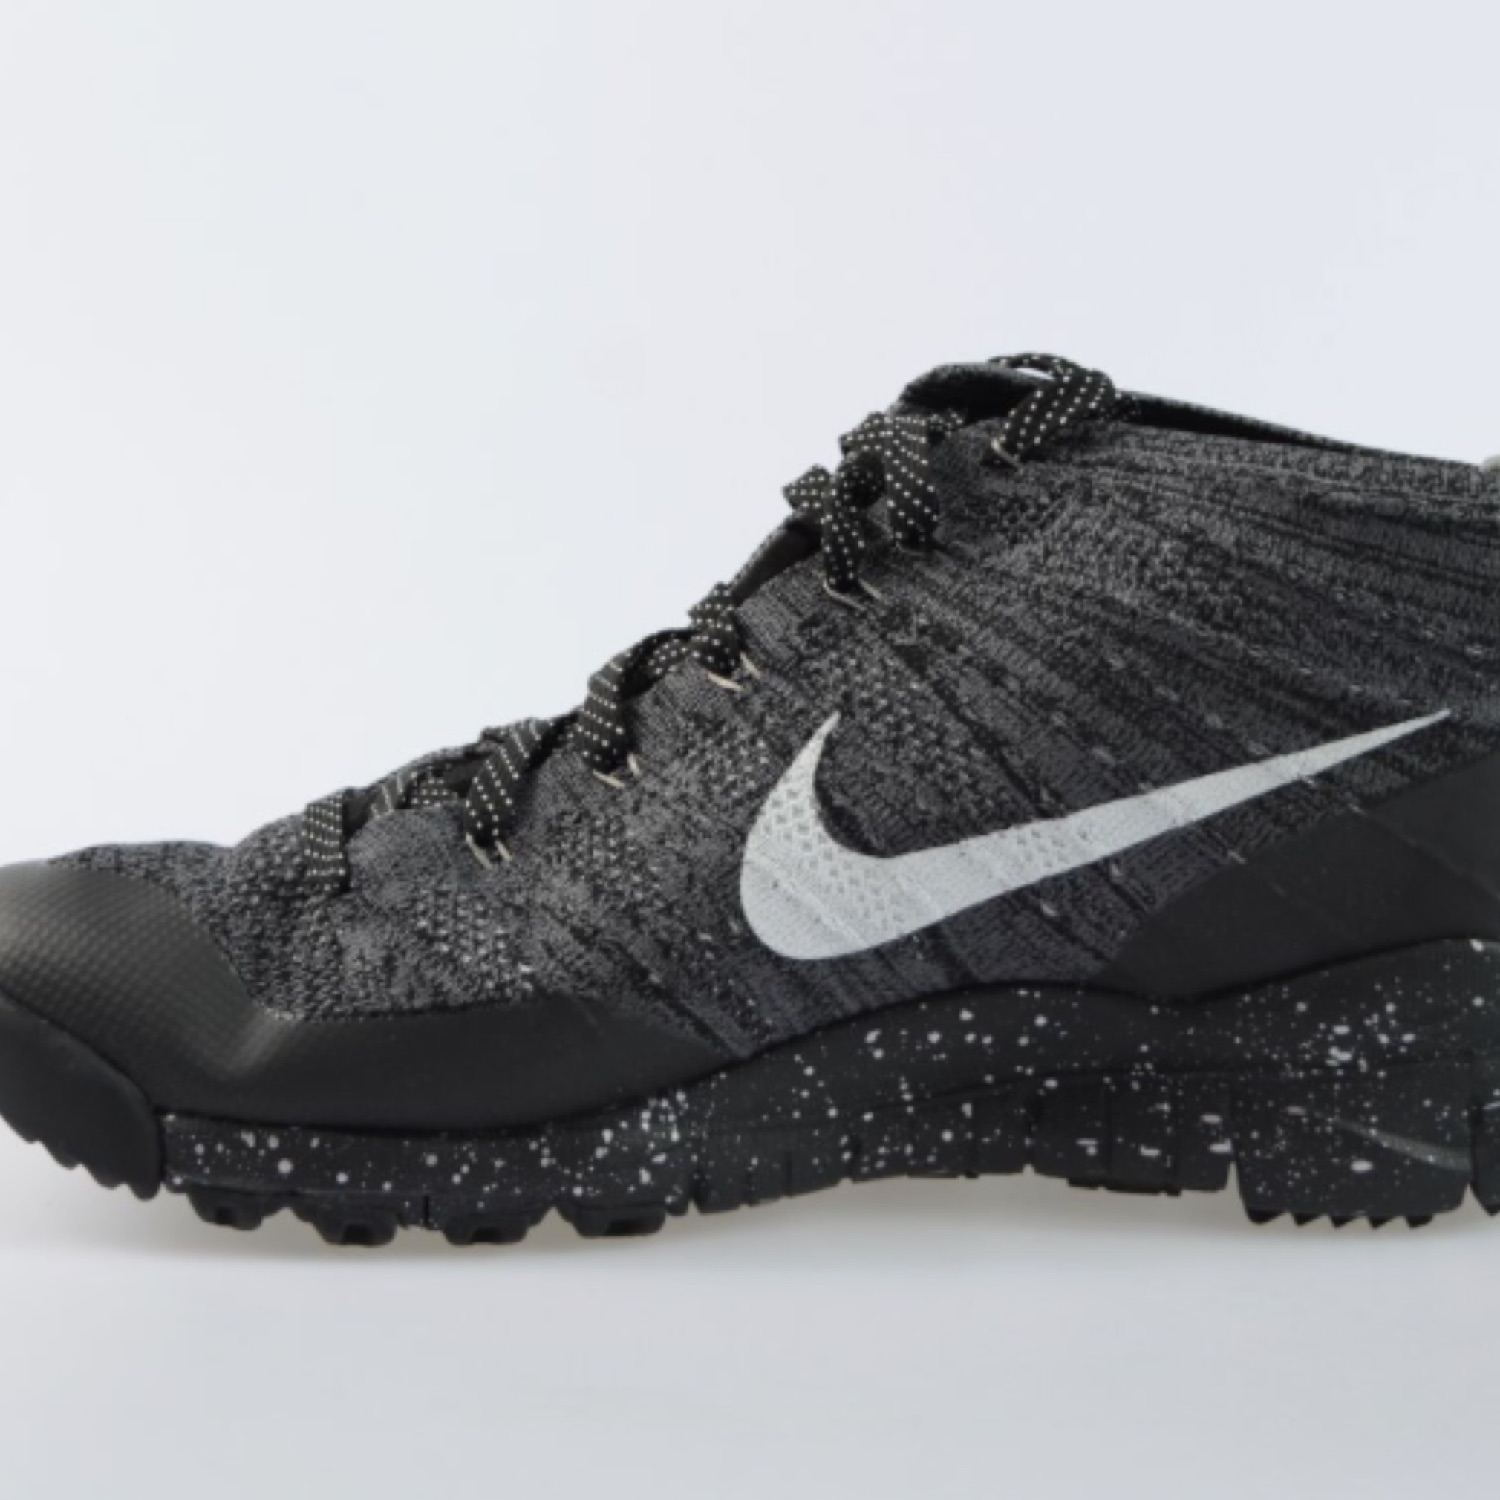 reliable quality cheap price most popular finest selection 33038 f3be3 nike flyknit trainer fsb black 400 ...